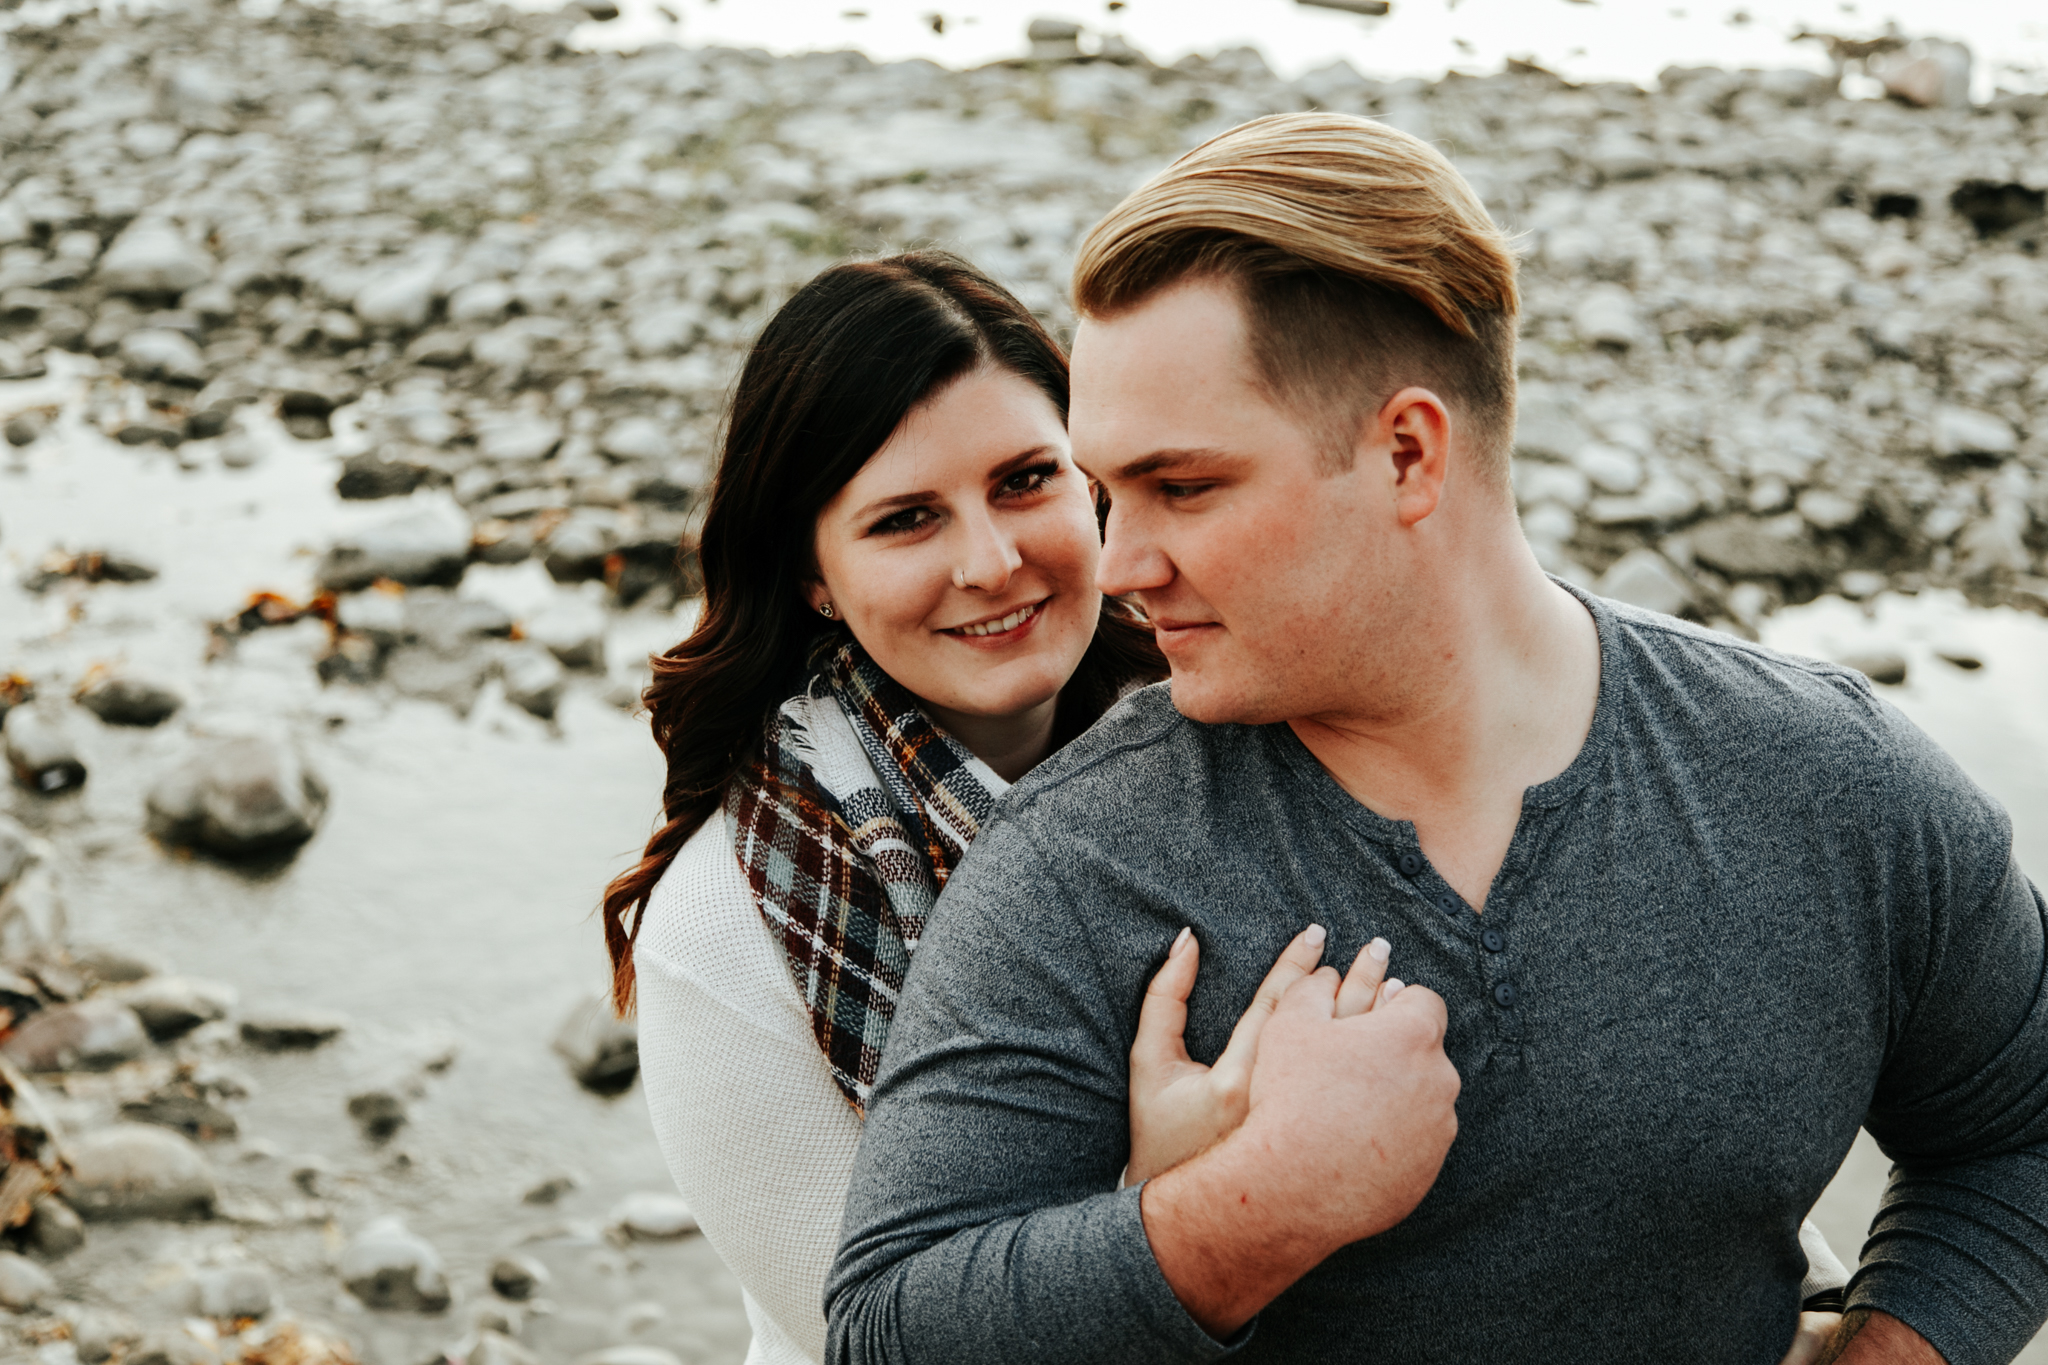 lethbridge-photographer-love-and-be-loved-photography-christy-bryan-fall-autumn-engagement-photo-image-picture-40.jpg